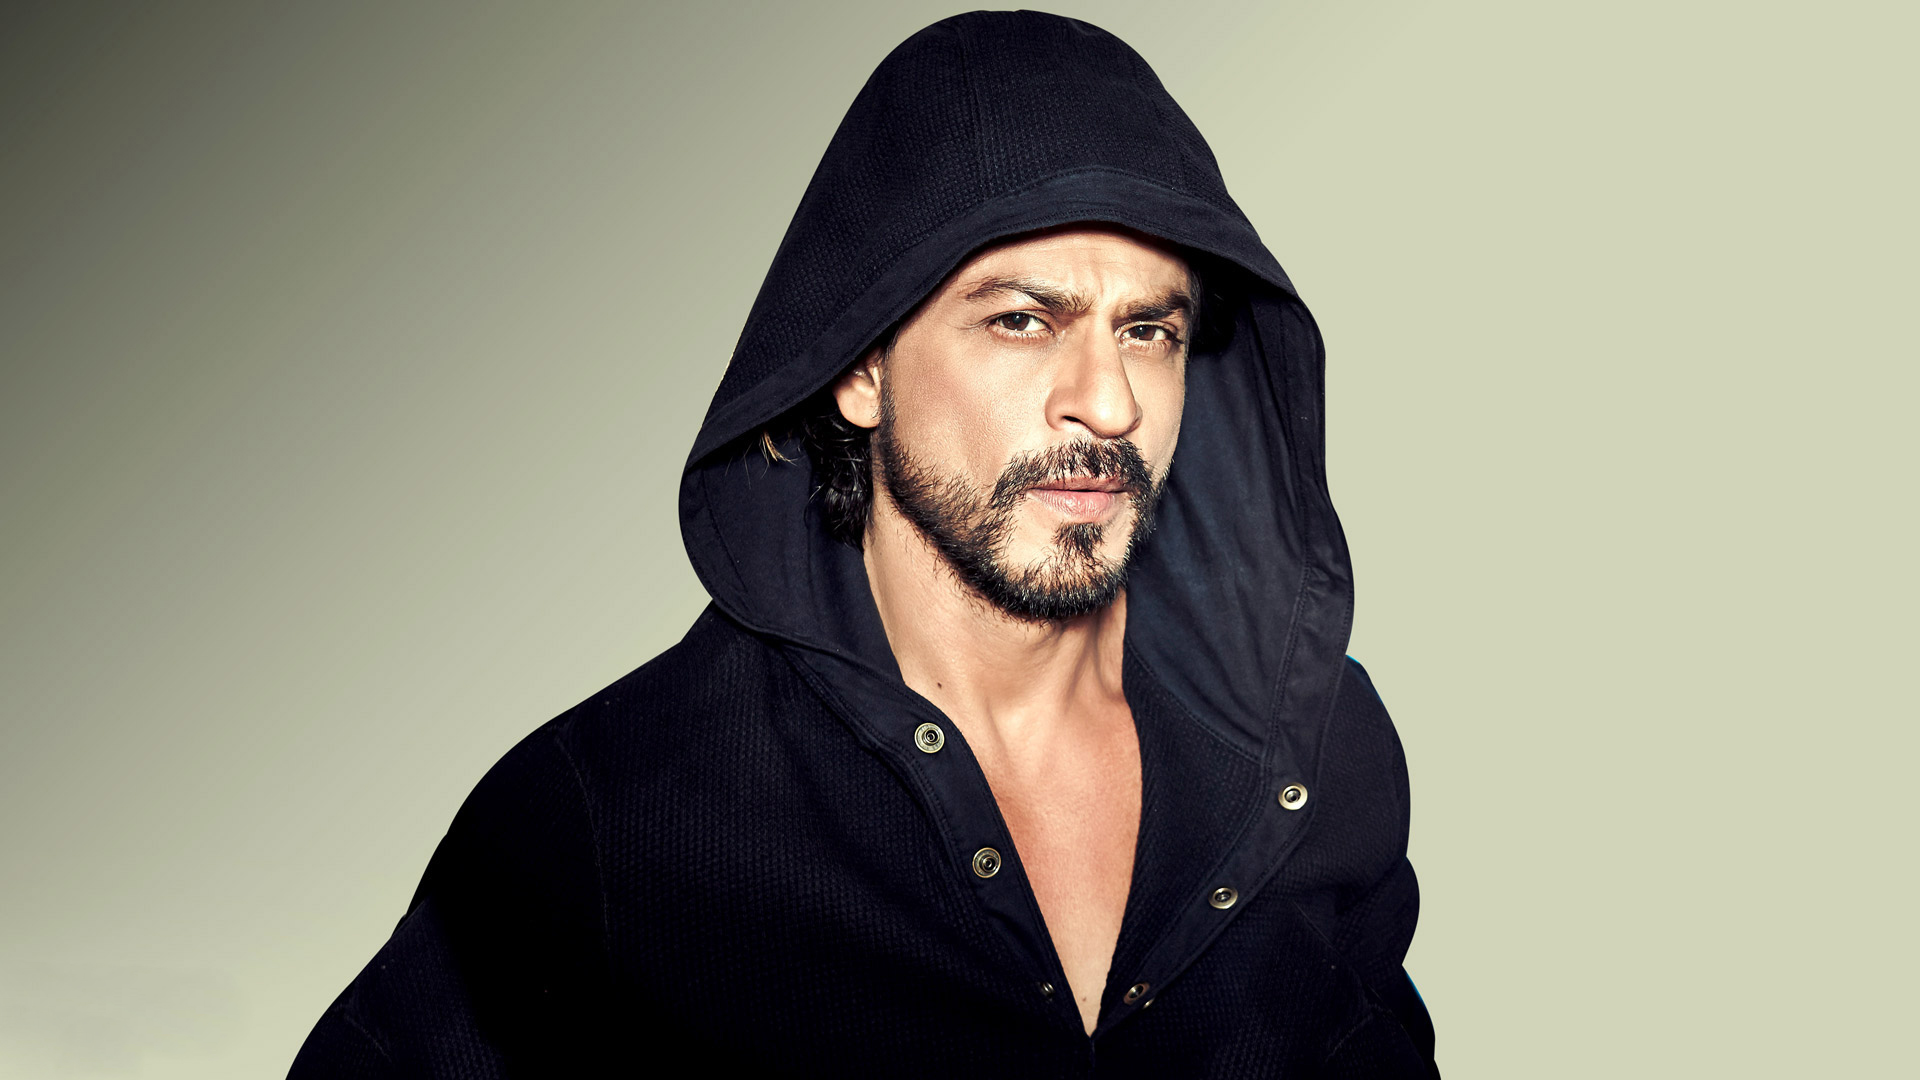 shahrukh khan photos images wallpapers pics download